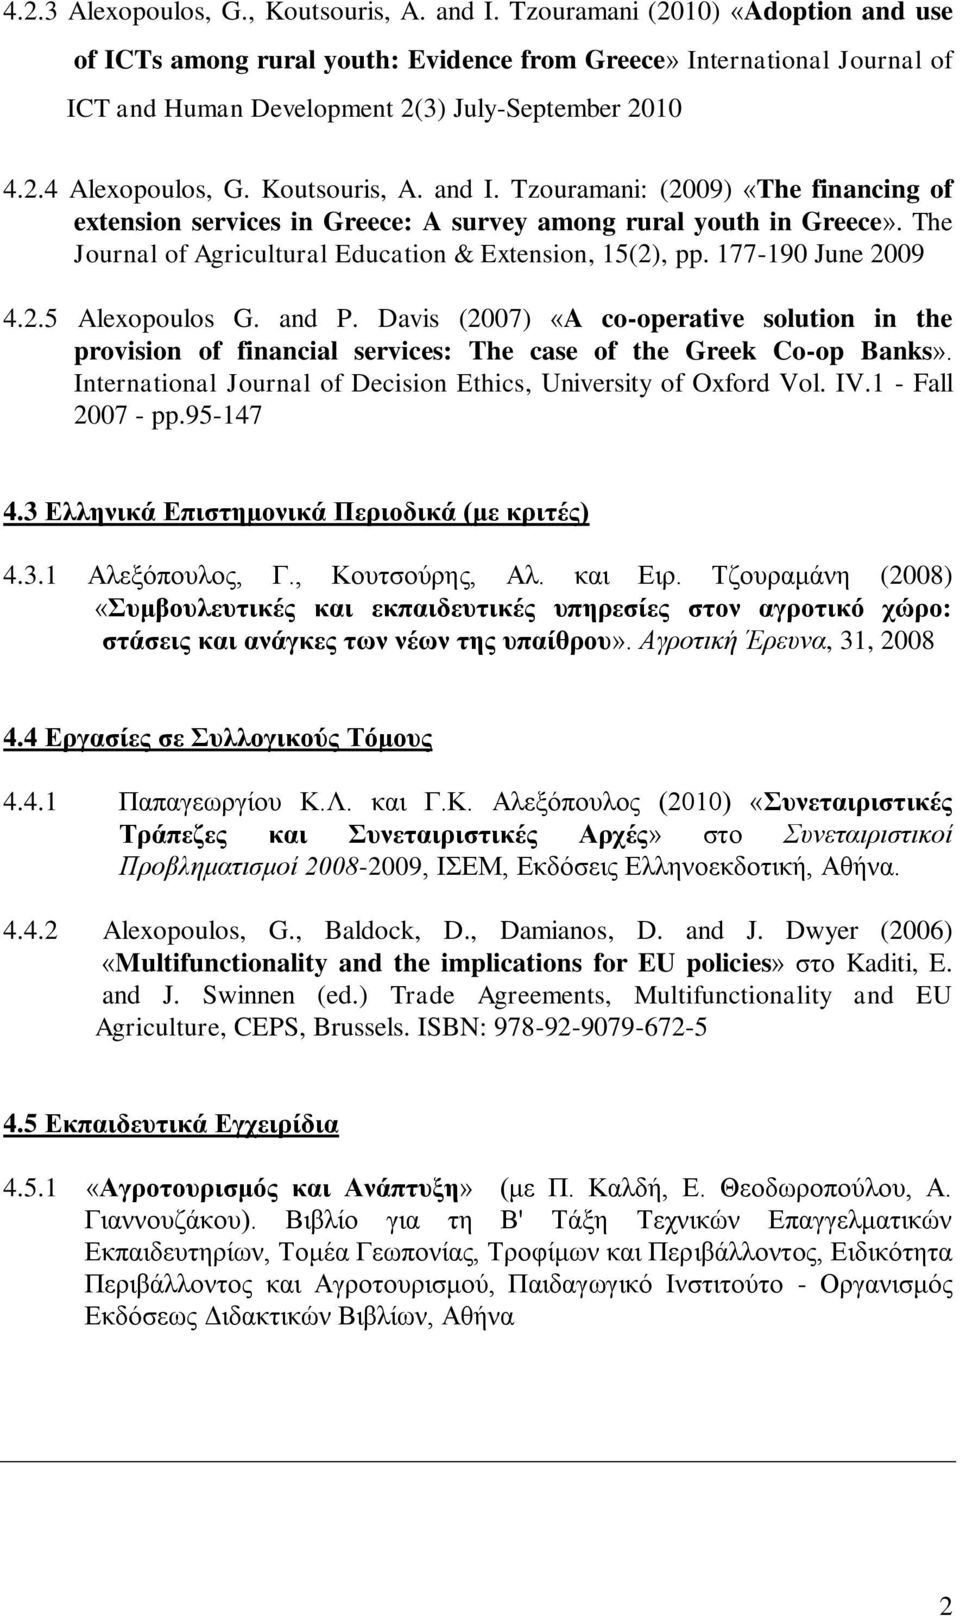 and I. Tzouramani: (2009) «The financing of extension services in Greece: A survey among rural youth in Greece». The Journal of Agricultural Education & Extension, 15(2), pp. 177-190 June 2009 4.2.5 Alexopoulos G.